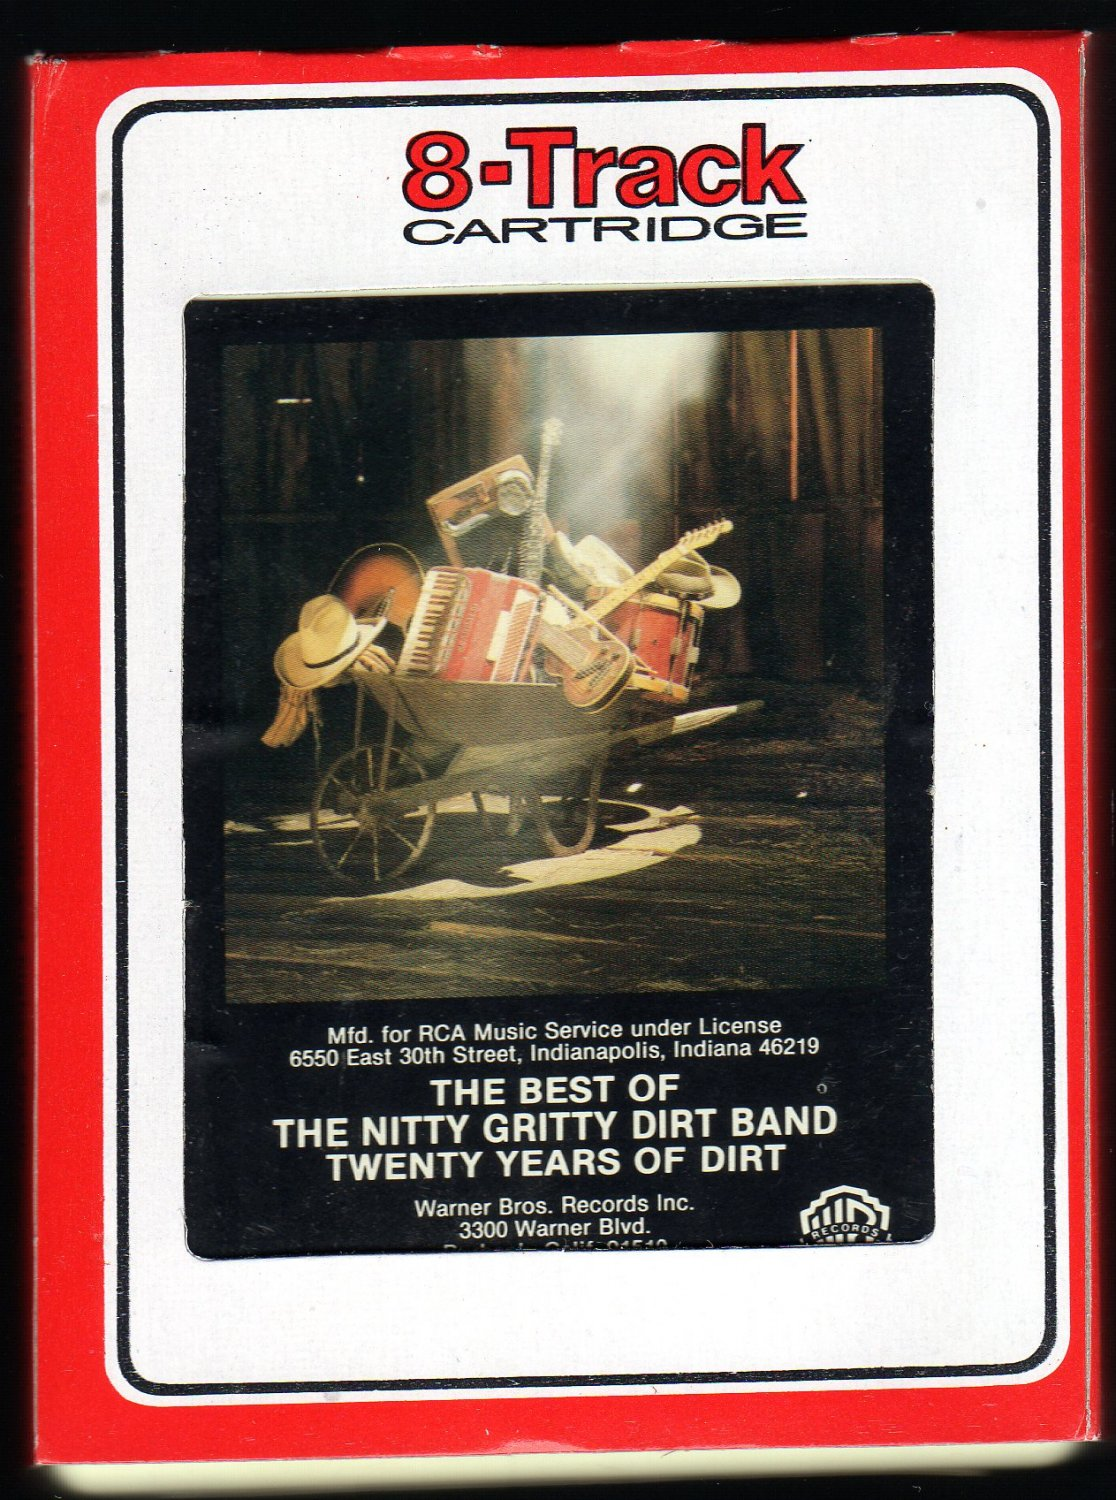 The Nitty Gritty Dirt Band - The Best Of Twenty Years Of Dirt 1986 RCA WB A29A 8-TRACK TAPE